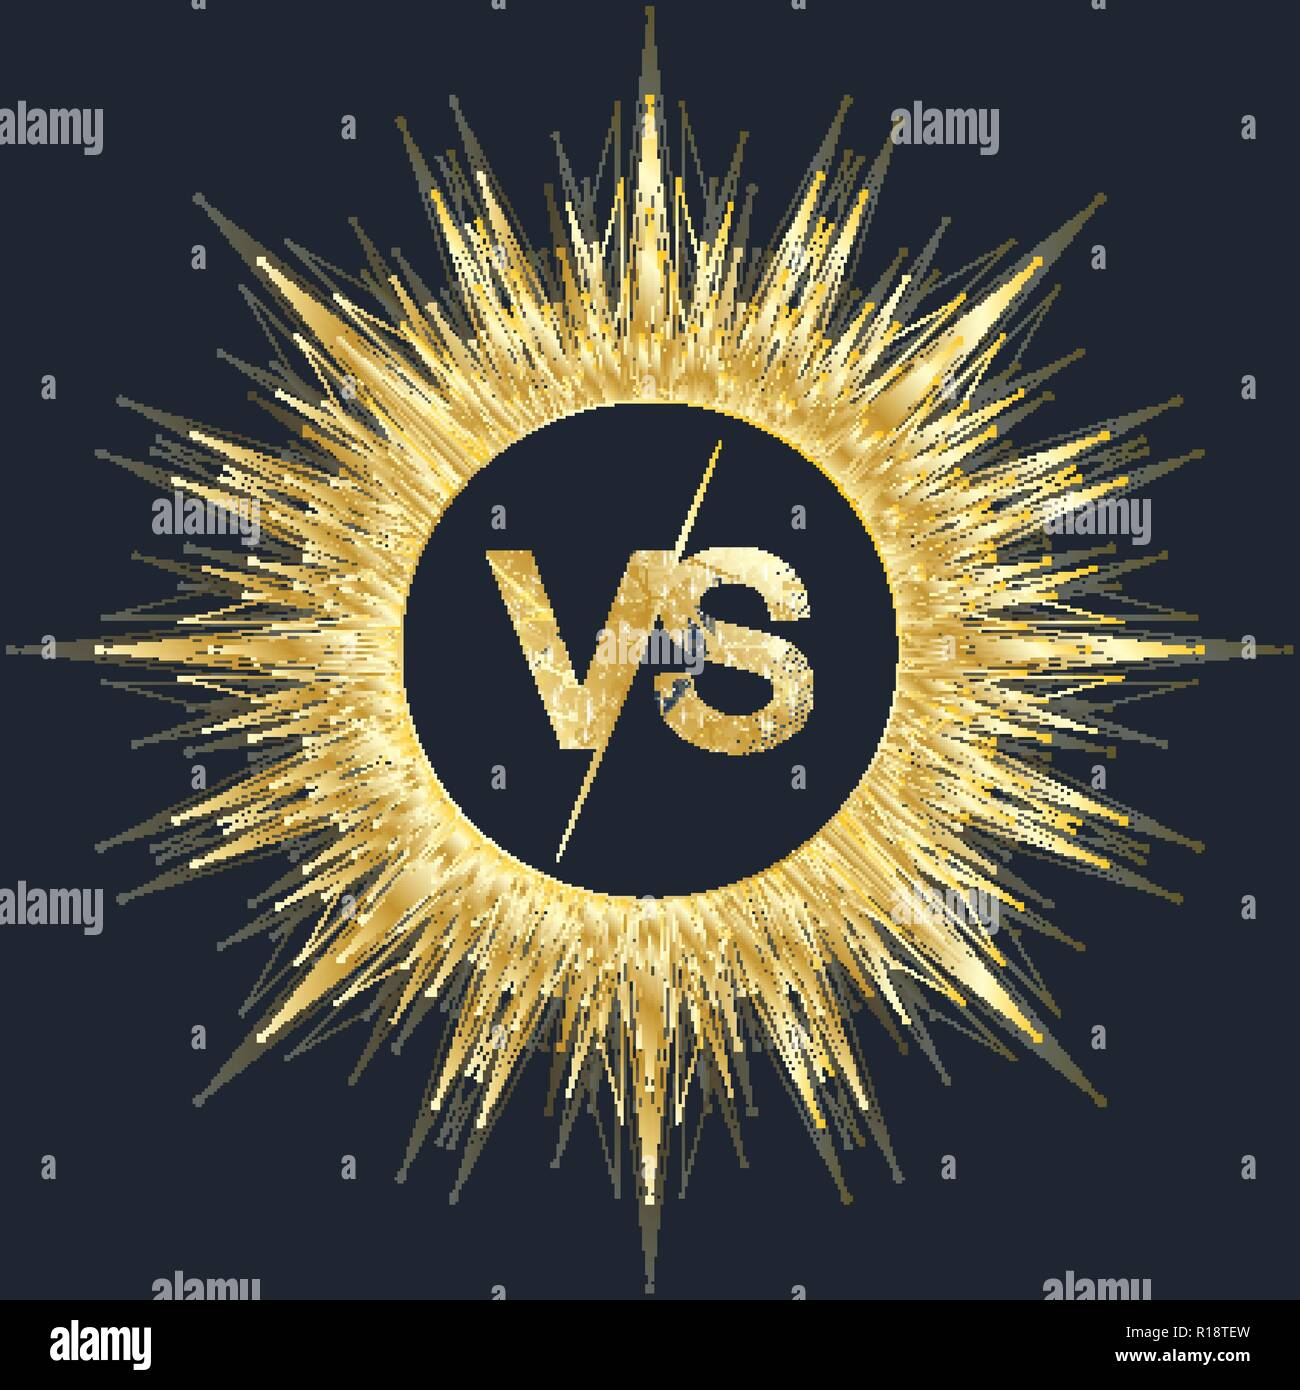 VS letters in the fractal element with connected lines and dots. Poster communication or particle compounds VS. Versus vector illustration - Stock Vector